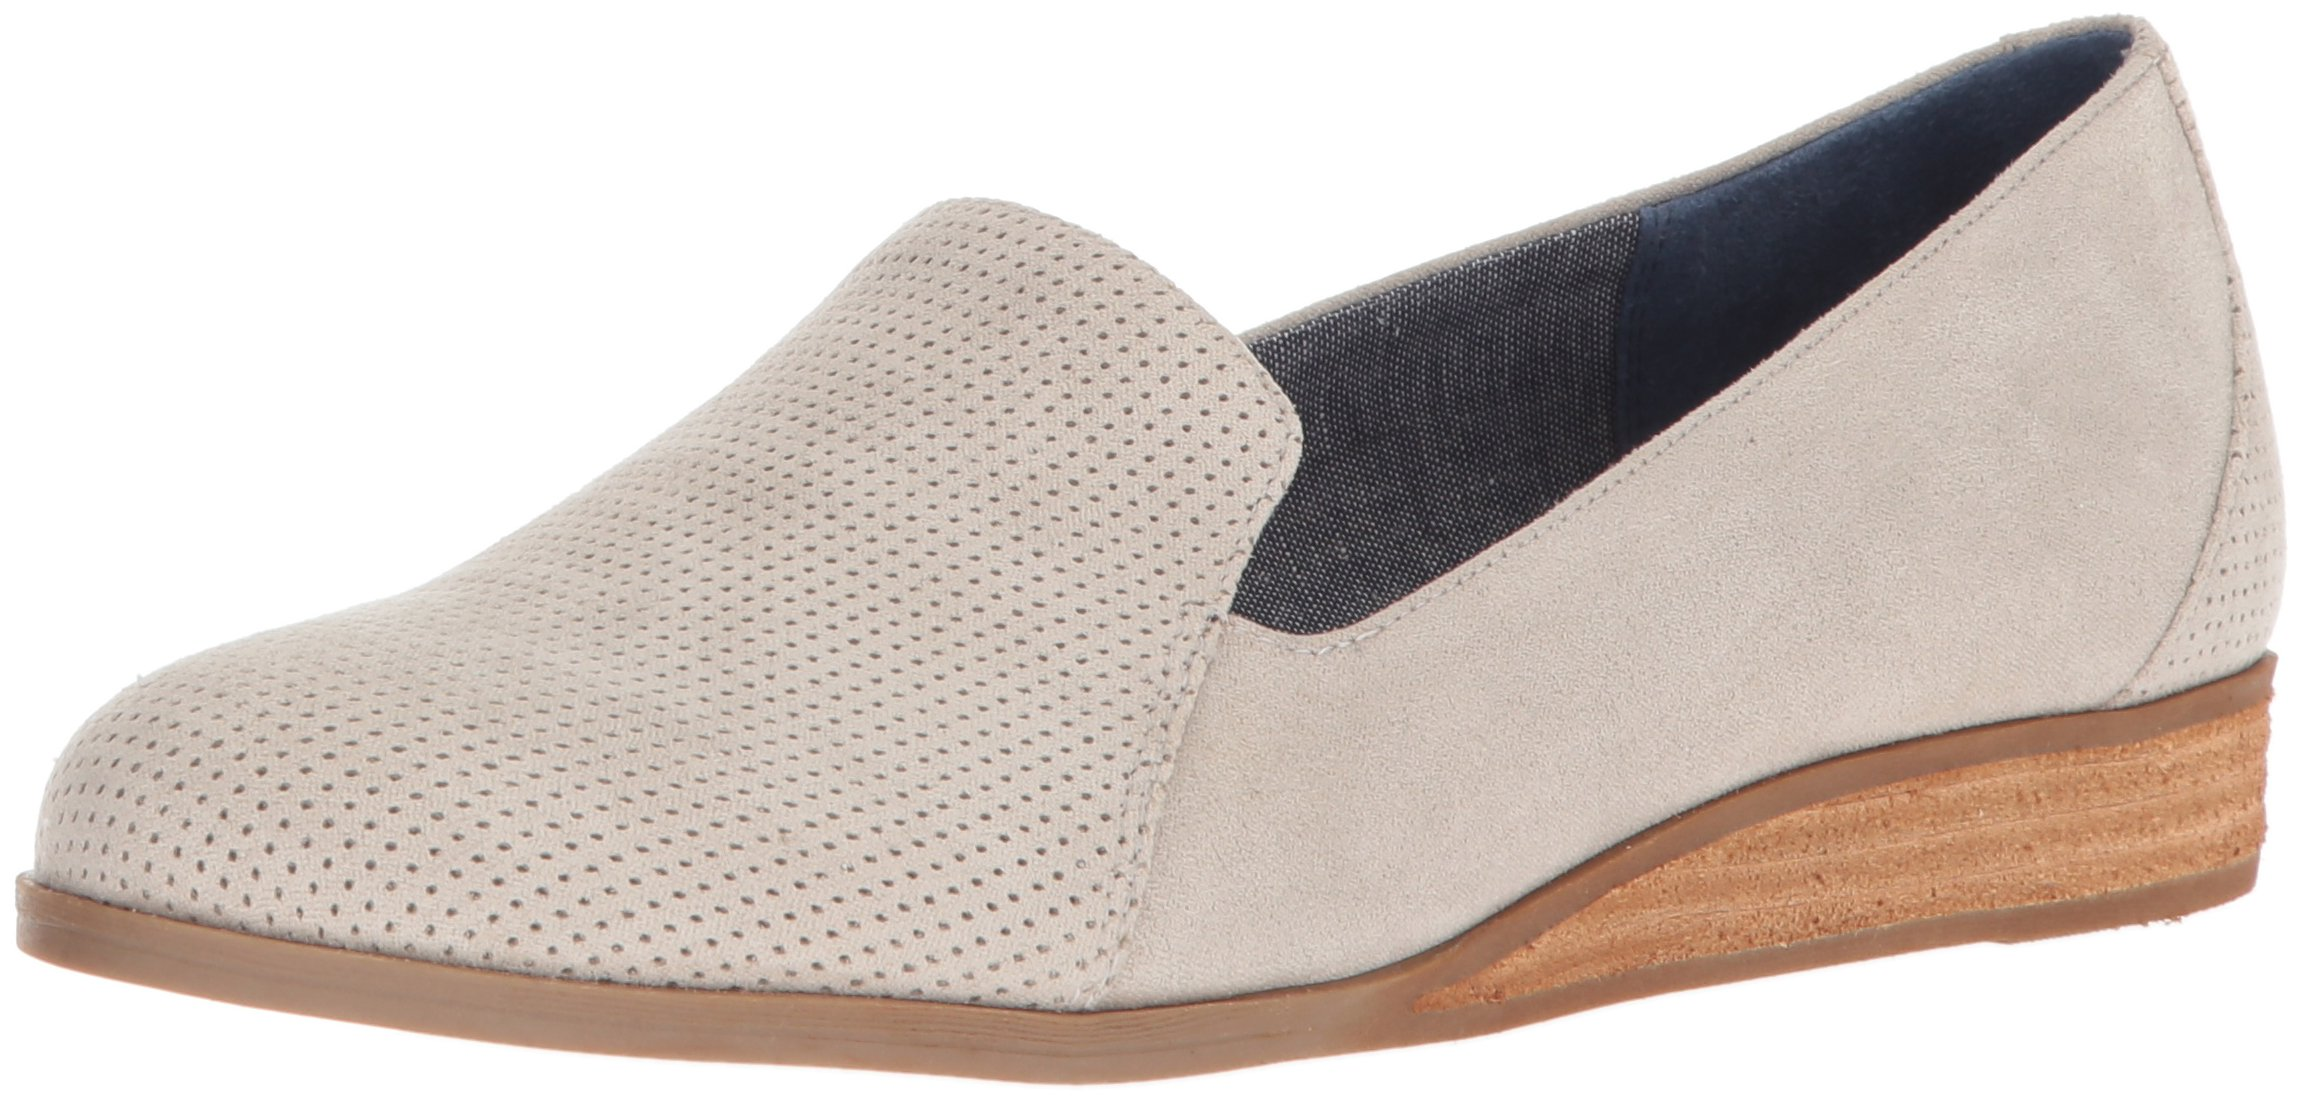 Dr. Scholl's Shoes Women's Dawned Loafer, Grey Microfiber, 7 M US